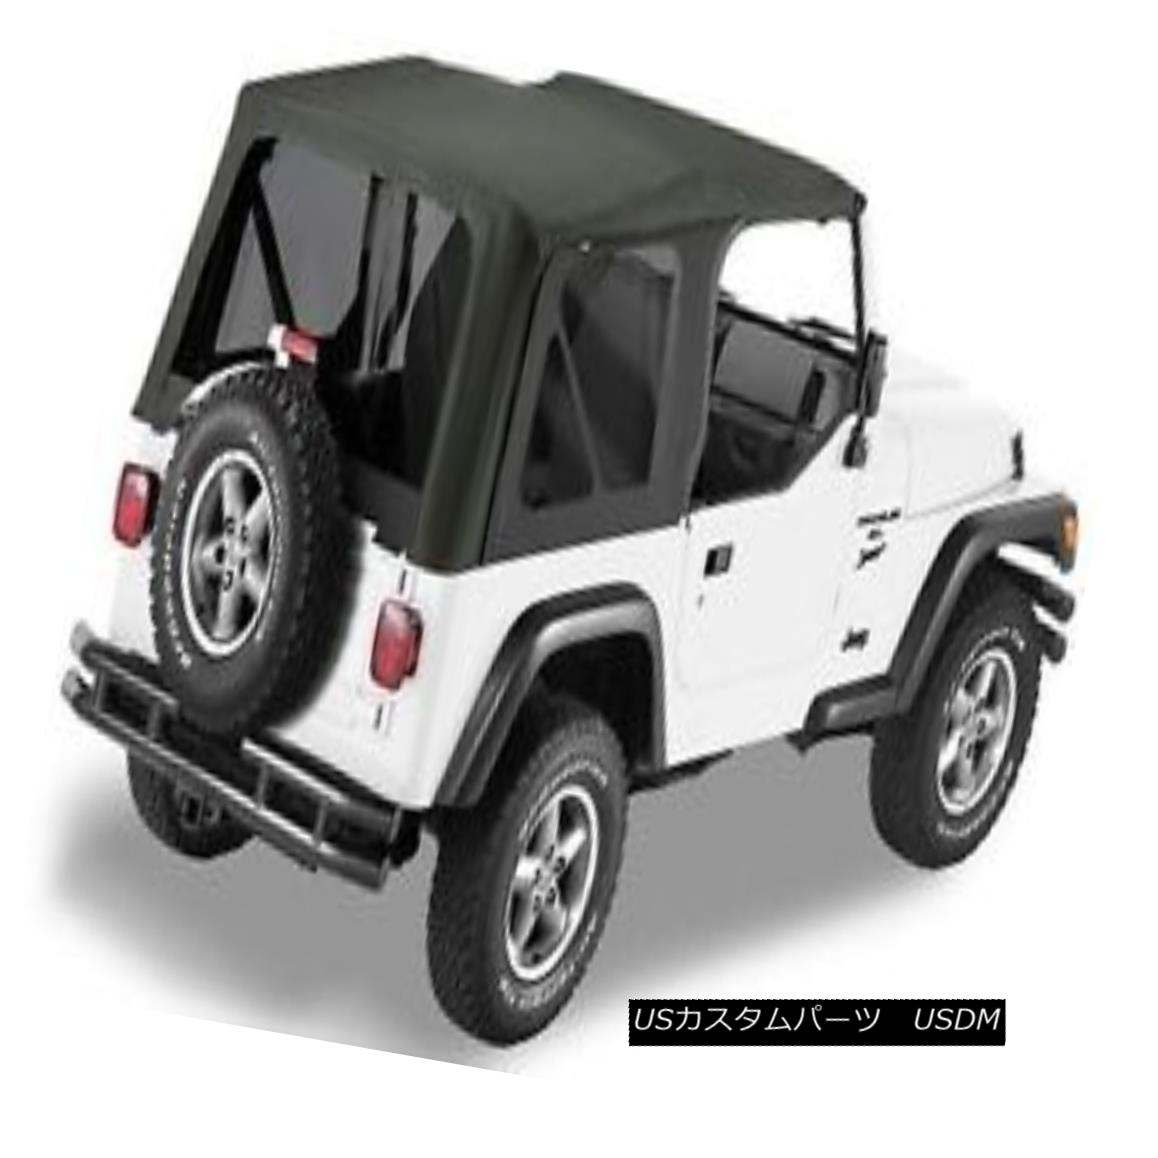 幌・ソフトトップ Bestop Sailcloth Replace A Top 97-02 Jeep Wrangler TJ Tinted Windows Black Crush Bestop Sailclothは、トップ97-02ジープラングラーTJは、Windowsブラッククラッシュを着色交換